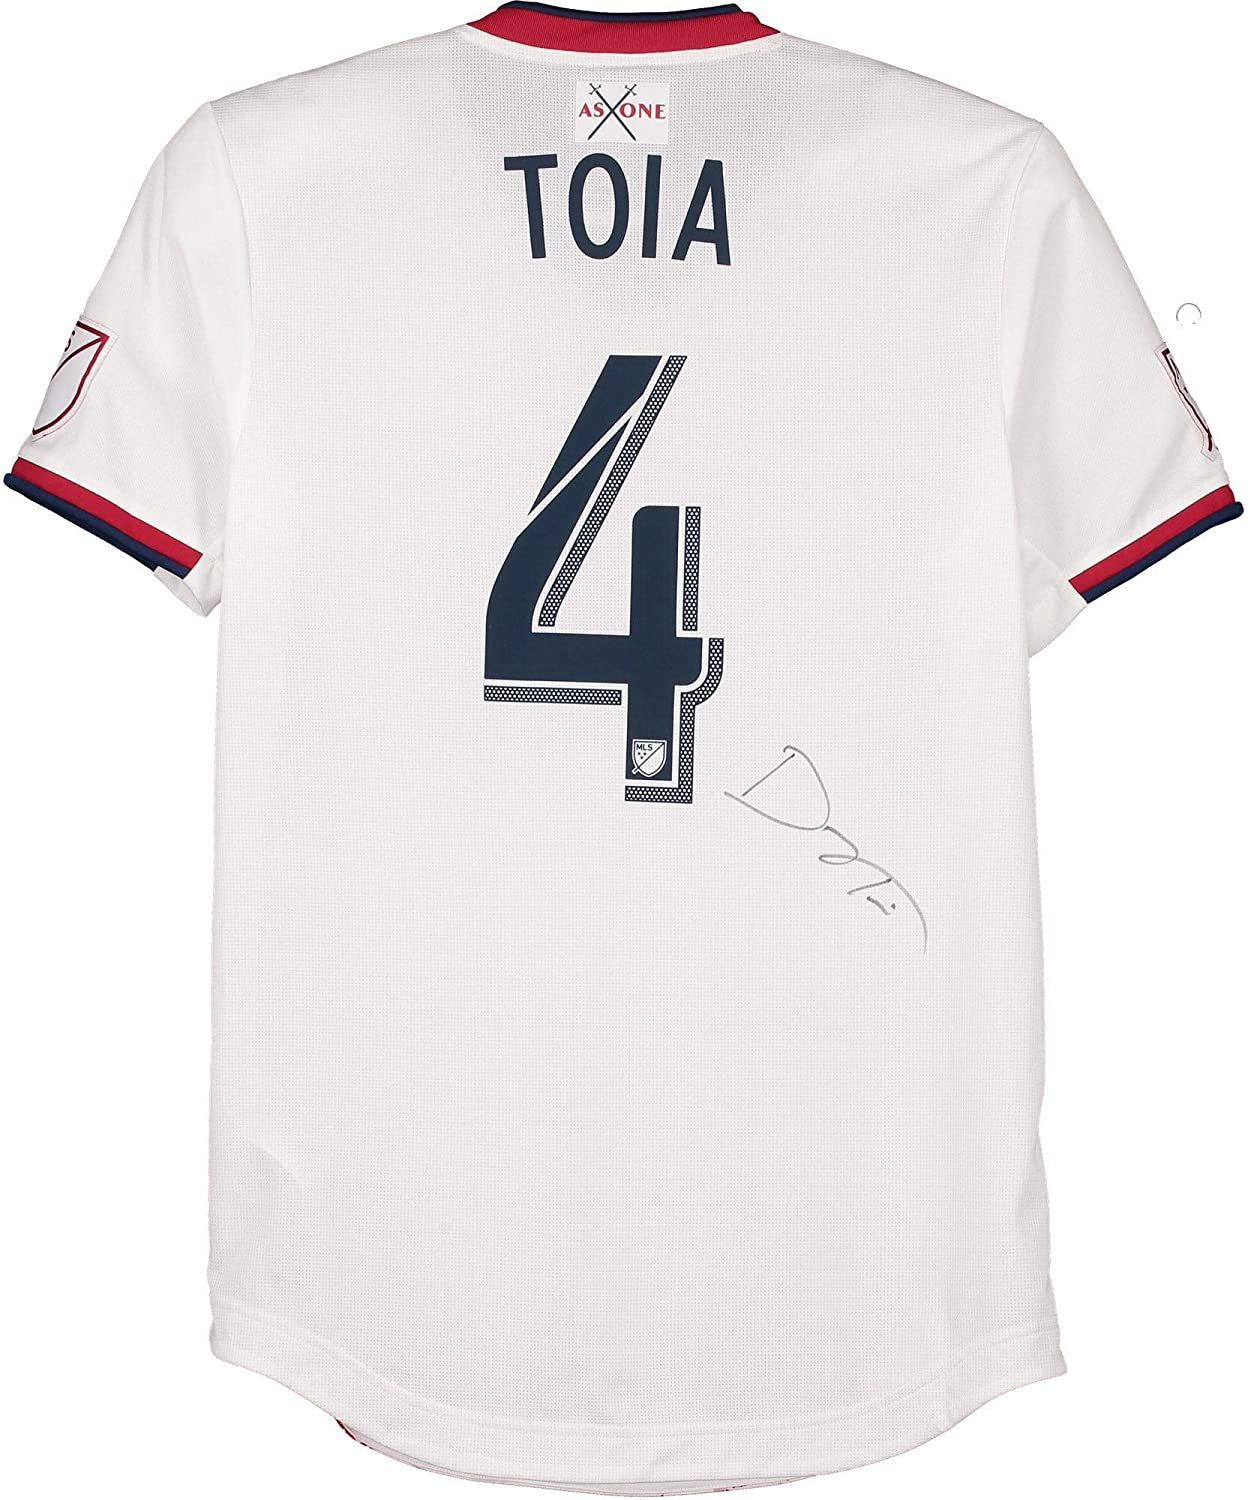 Donny Toia Real Salt Lake Autographed Match-Used #4 White Jersey from the 2019 MLS Season - Fanatics Authentic Certified